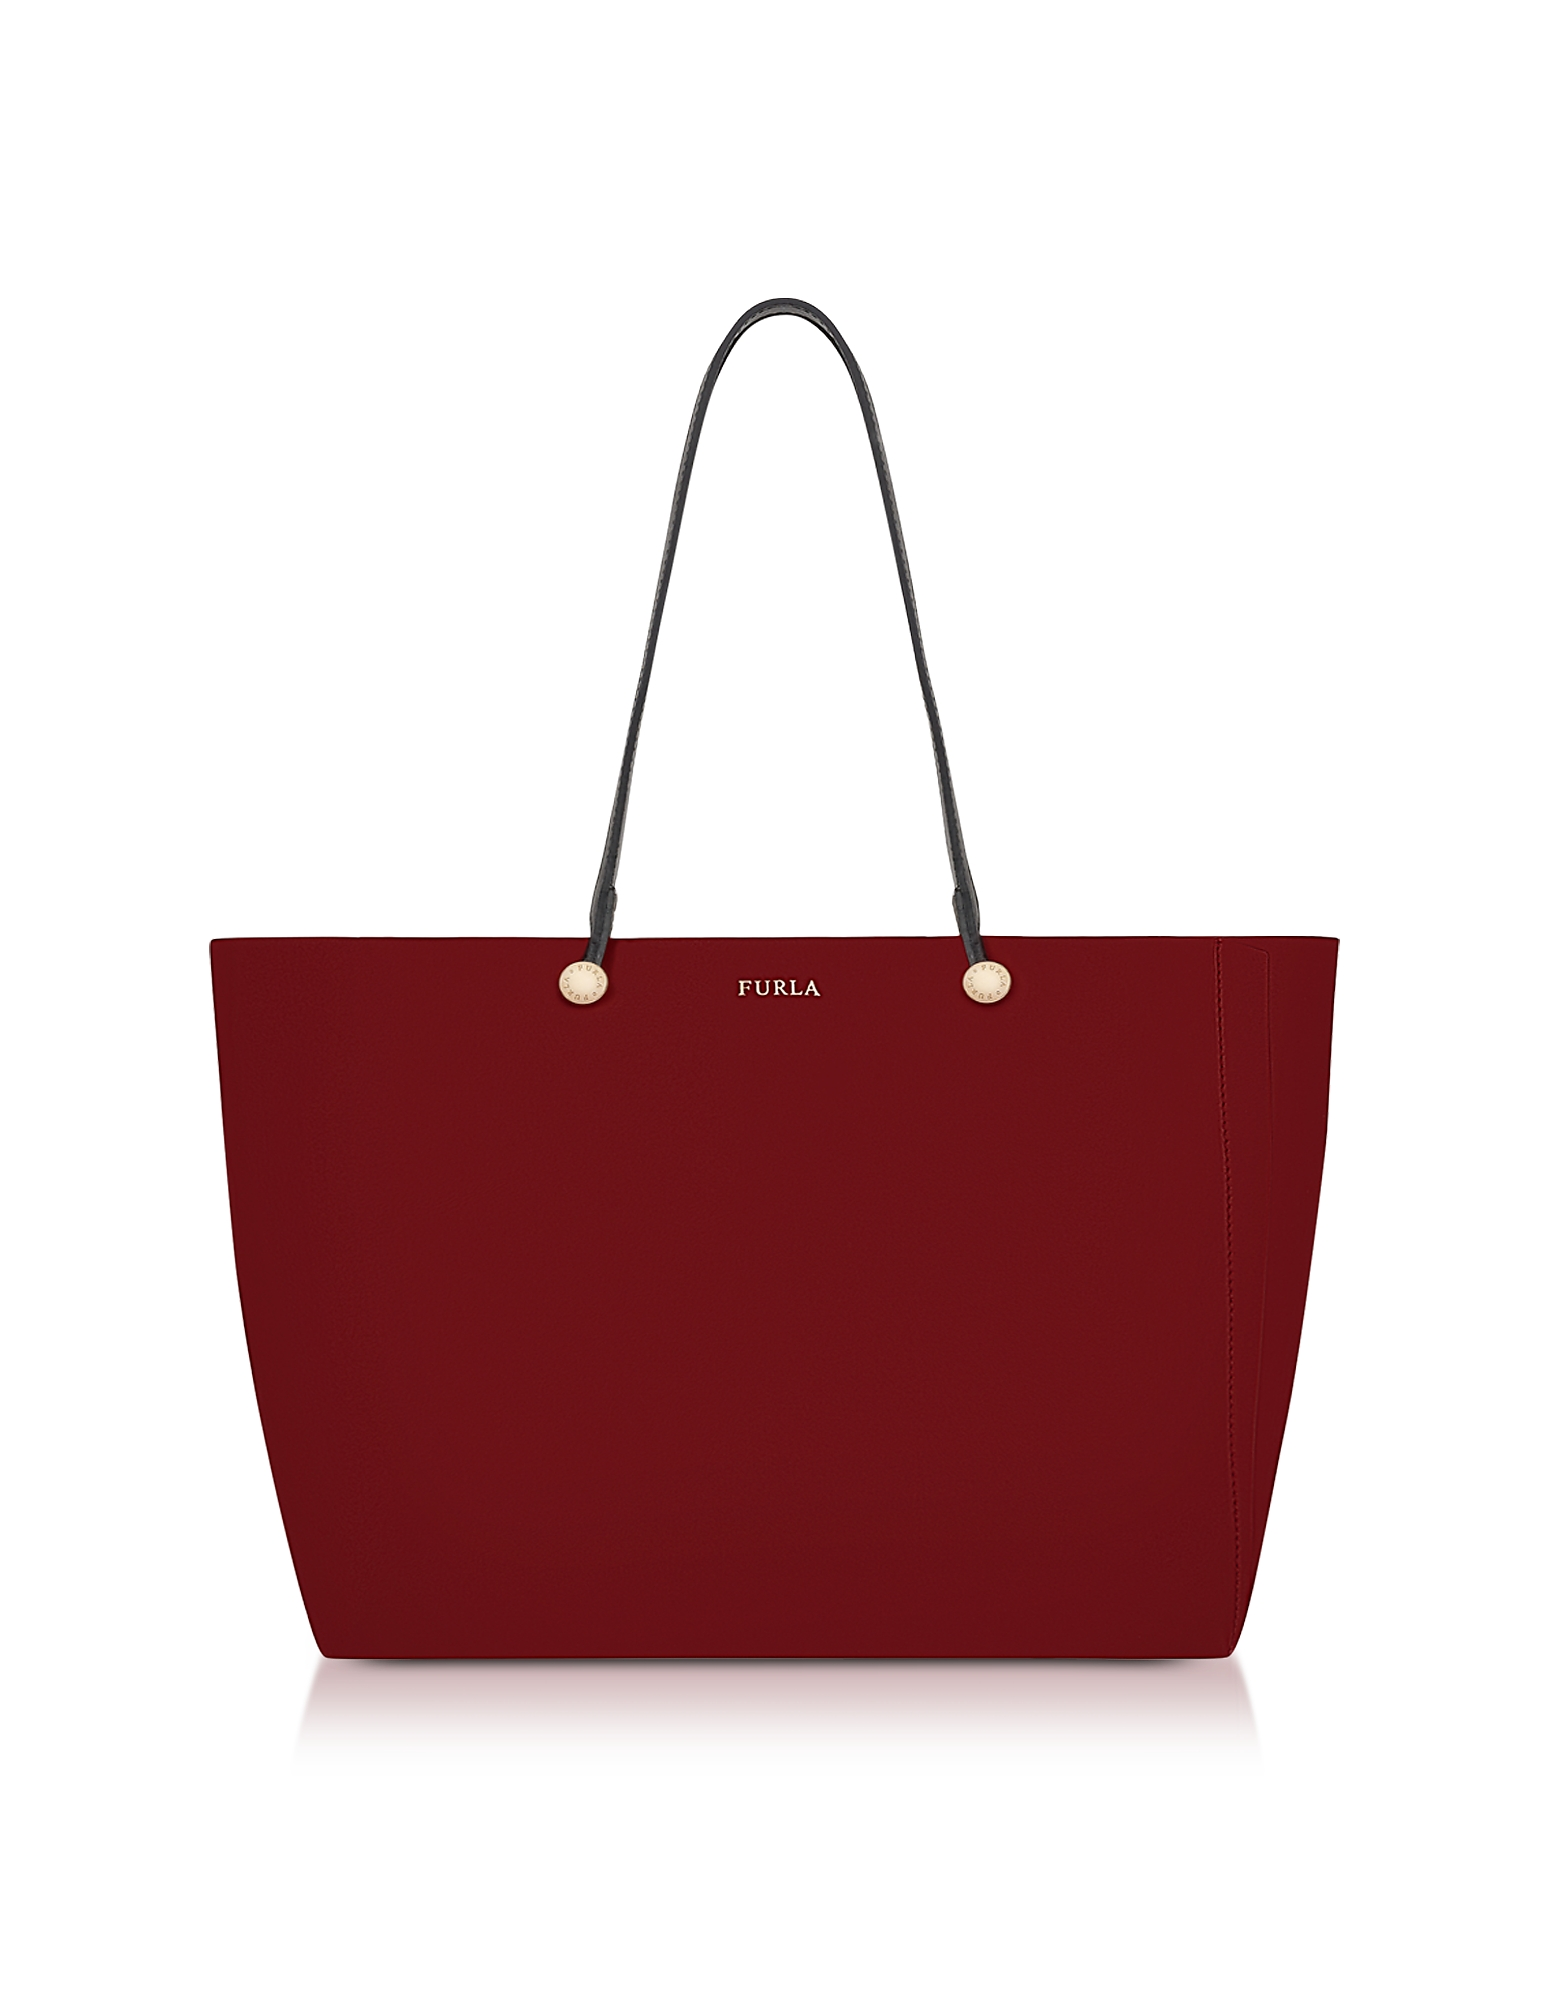 Furla Handbags, Cherry and Toni Vaniglia Leather Eden Medium Tote Bag